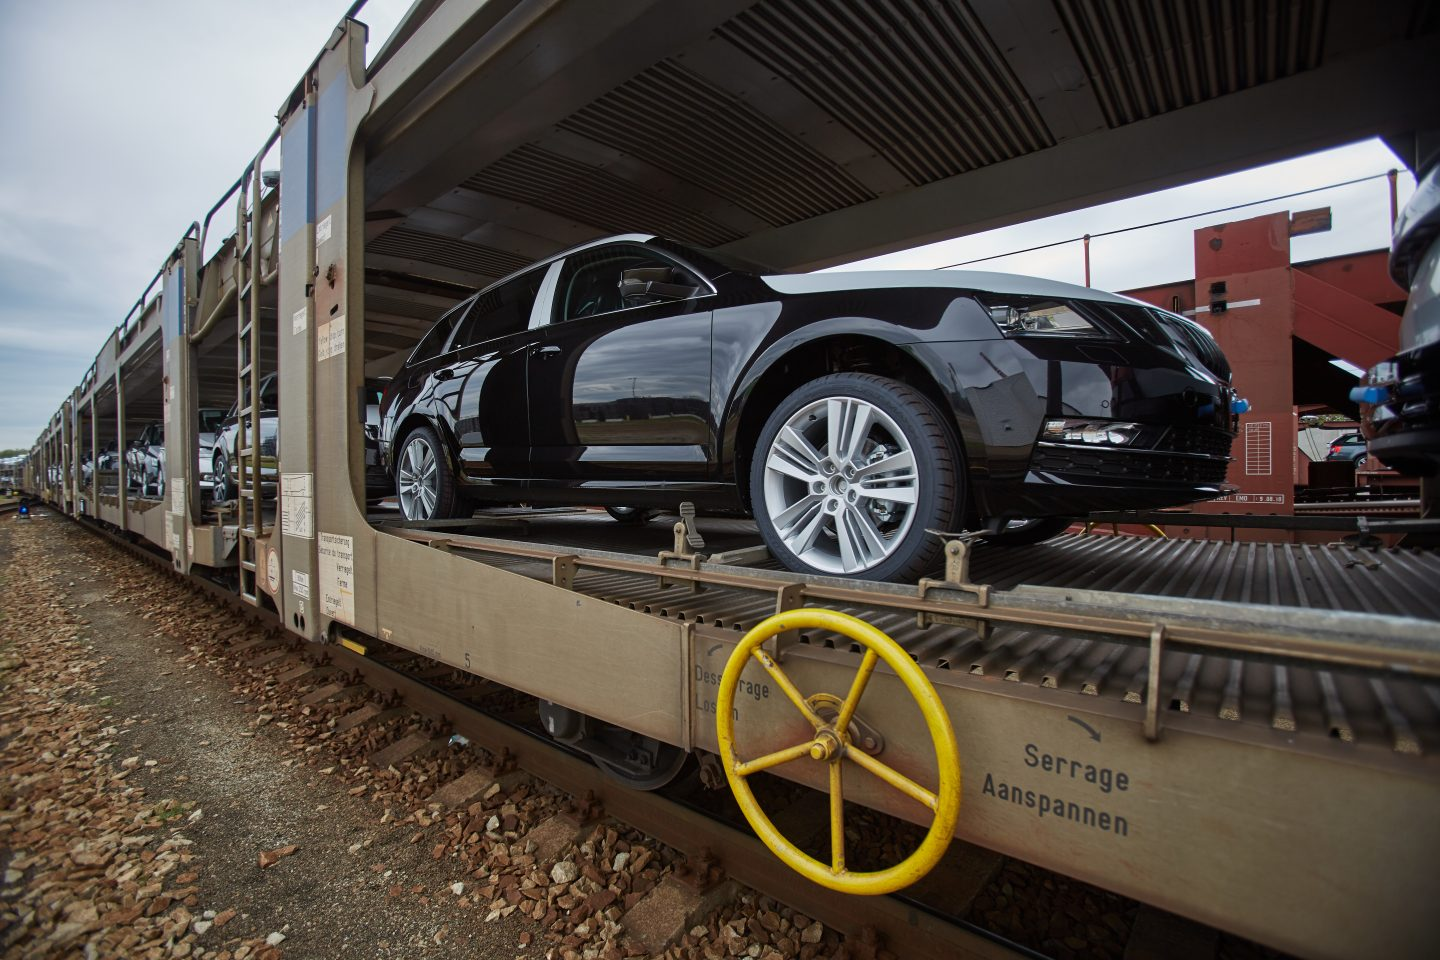 skoda-logistics-car-train-transport